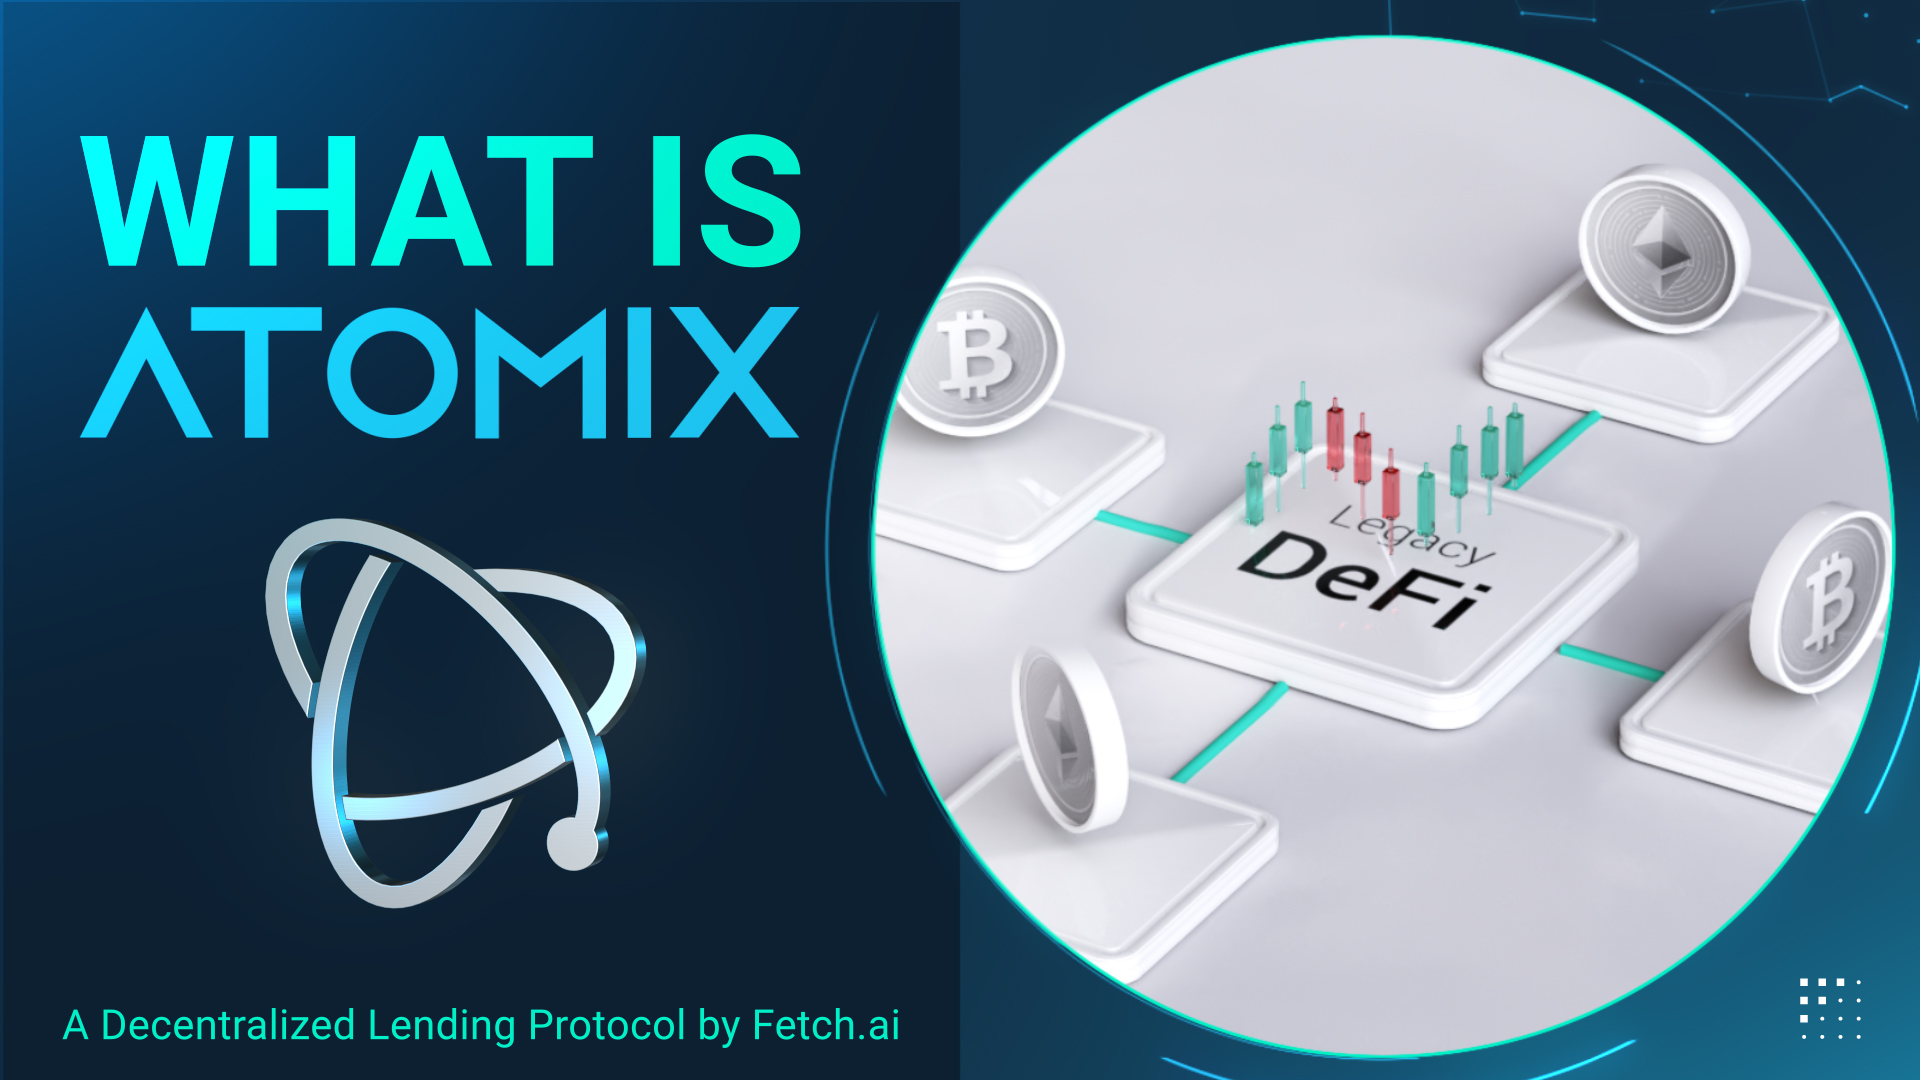 https://atomix.finance/wp-content/uploads/2021/06/YT_Atomix_What_is.jpg